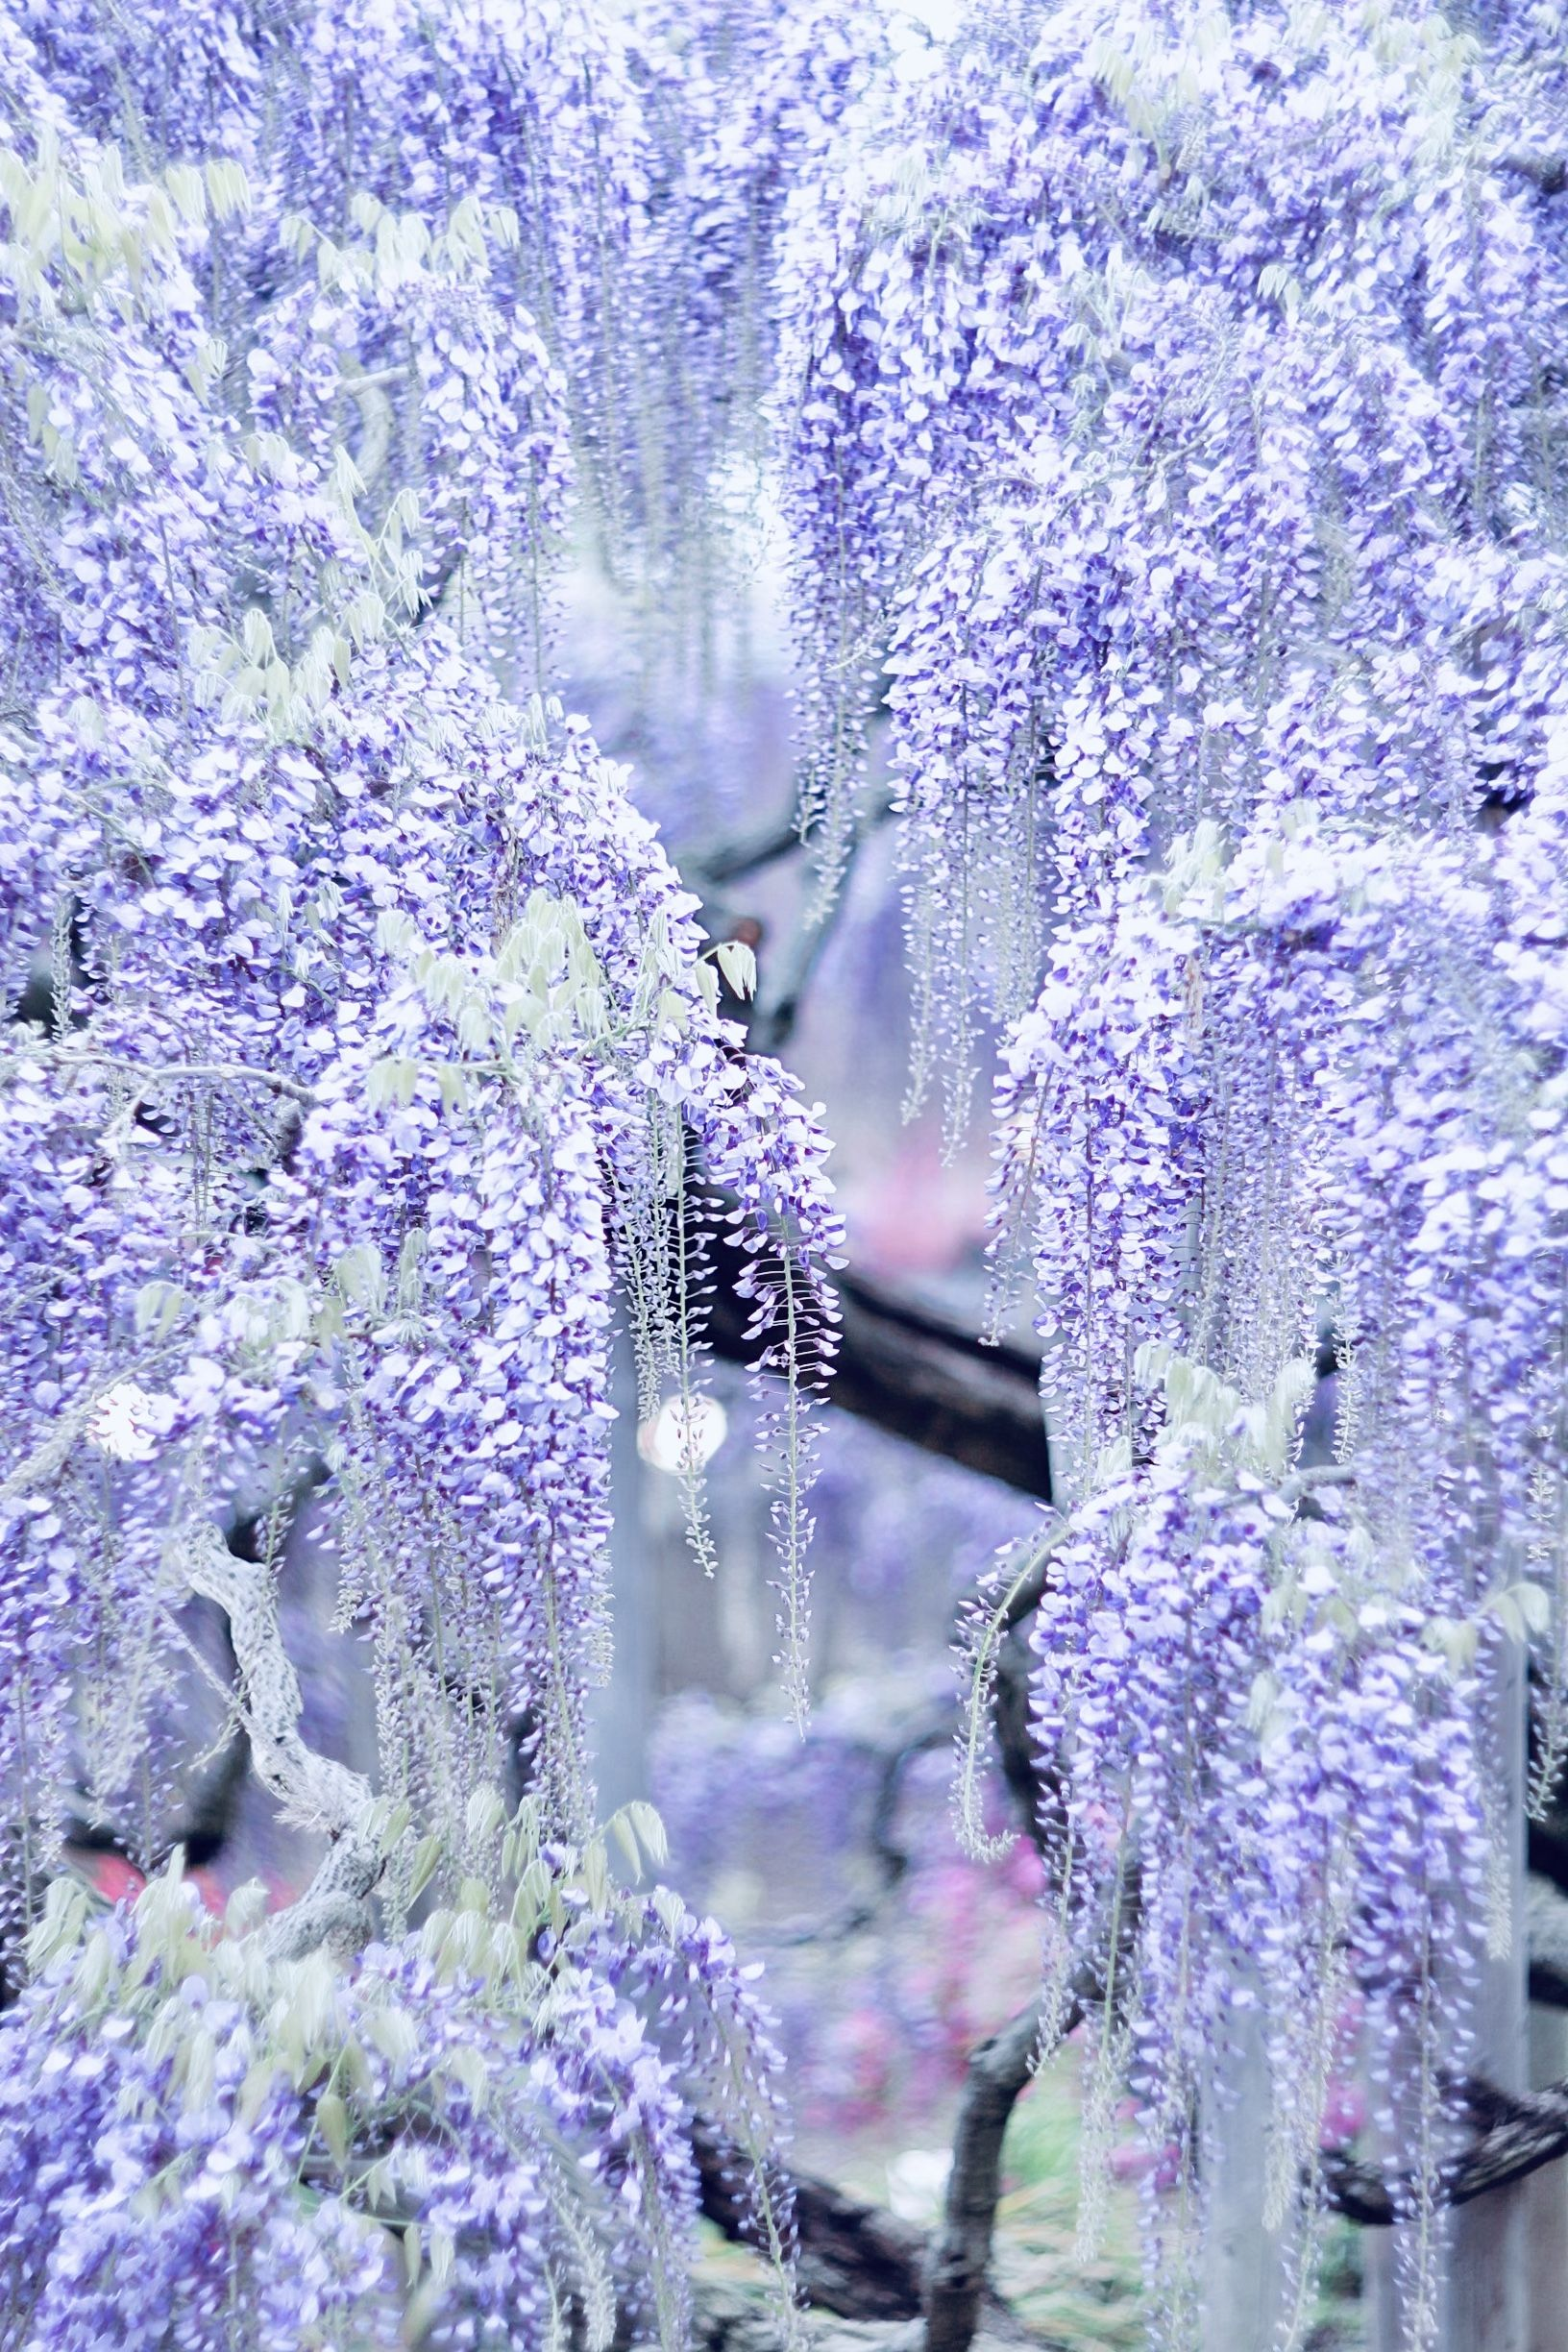 Wisteria flower💜 photo by another_blue_sky instagram